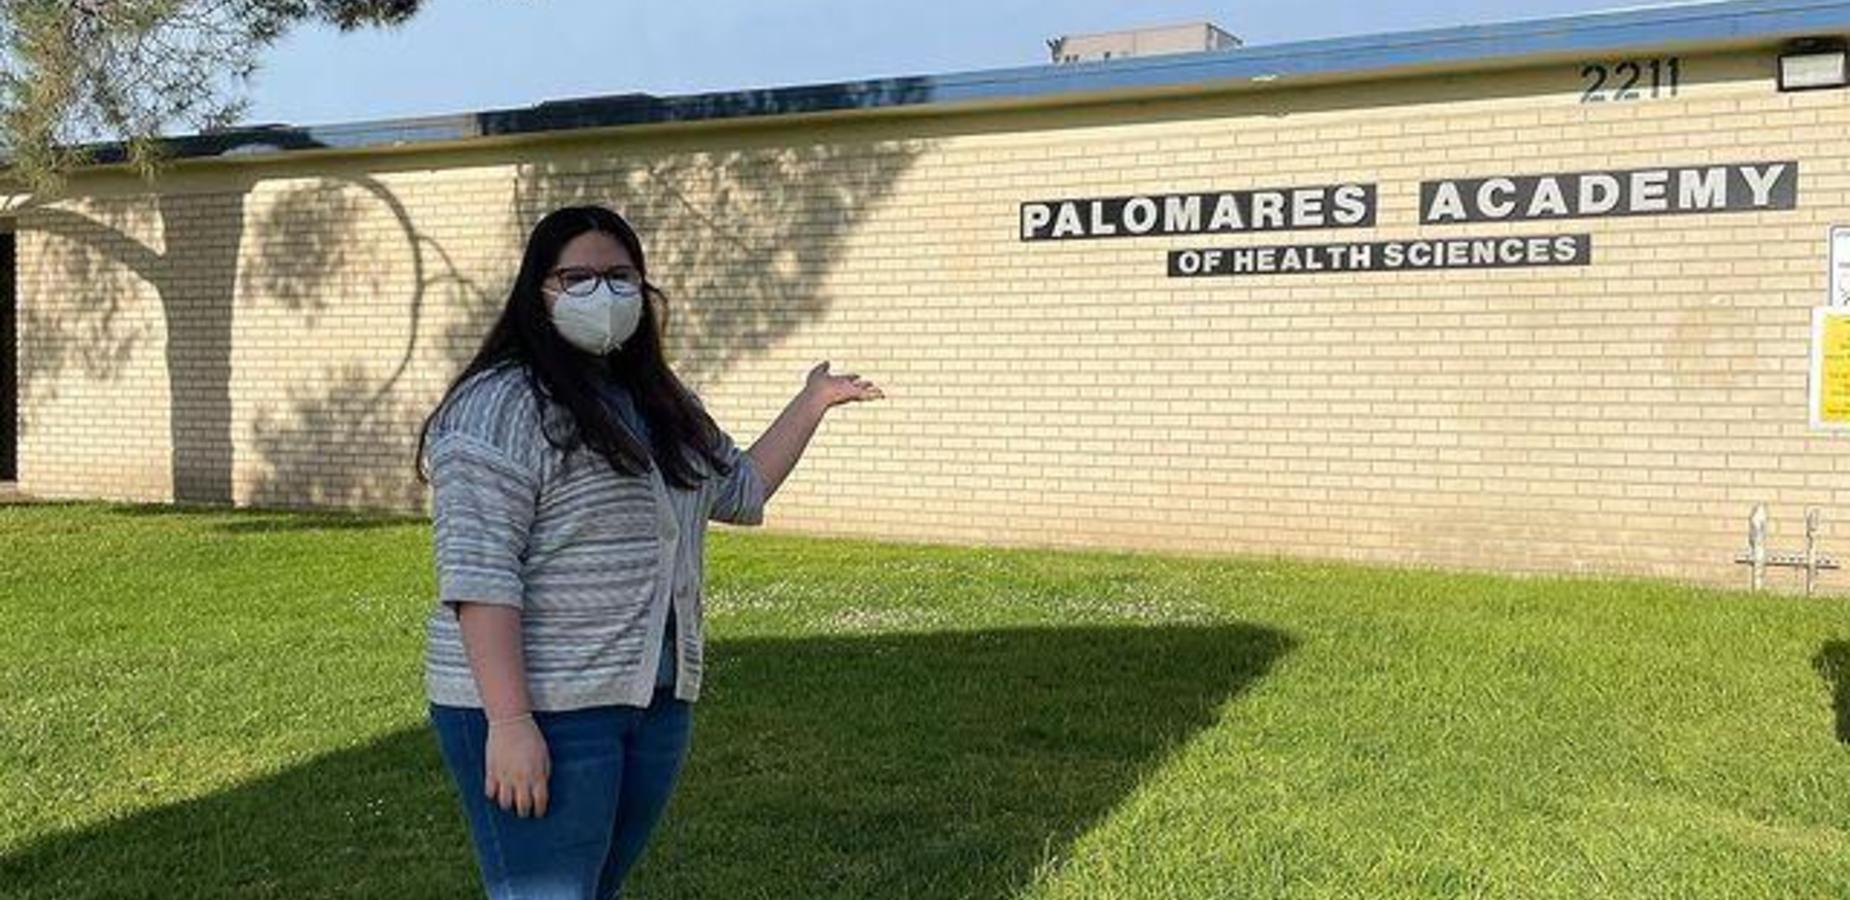 We are #proud along with Principal, Dr. Ramos-Beal of our Palomares Academy Scholars! Students volunteered their time to support the East Valley Community Center during the most recent vaccine drive!  #Proud2bepusd @ktlaweekendam @nafcareeracads #befutureready #gopanthersgo